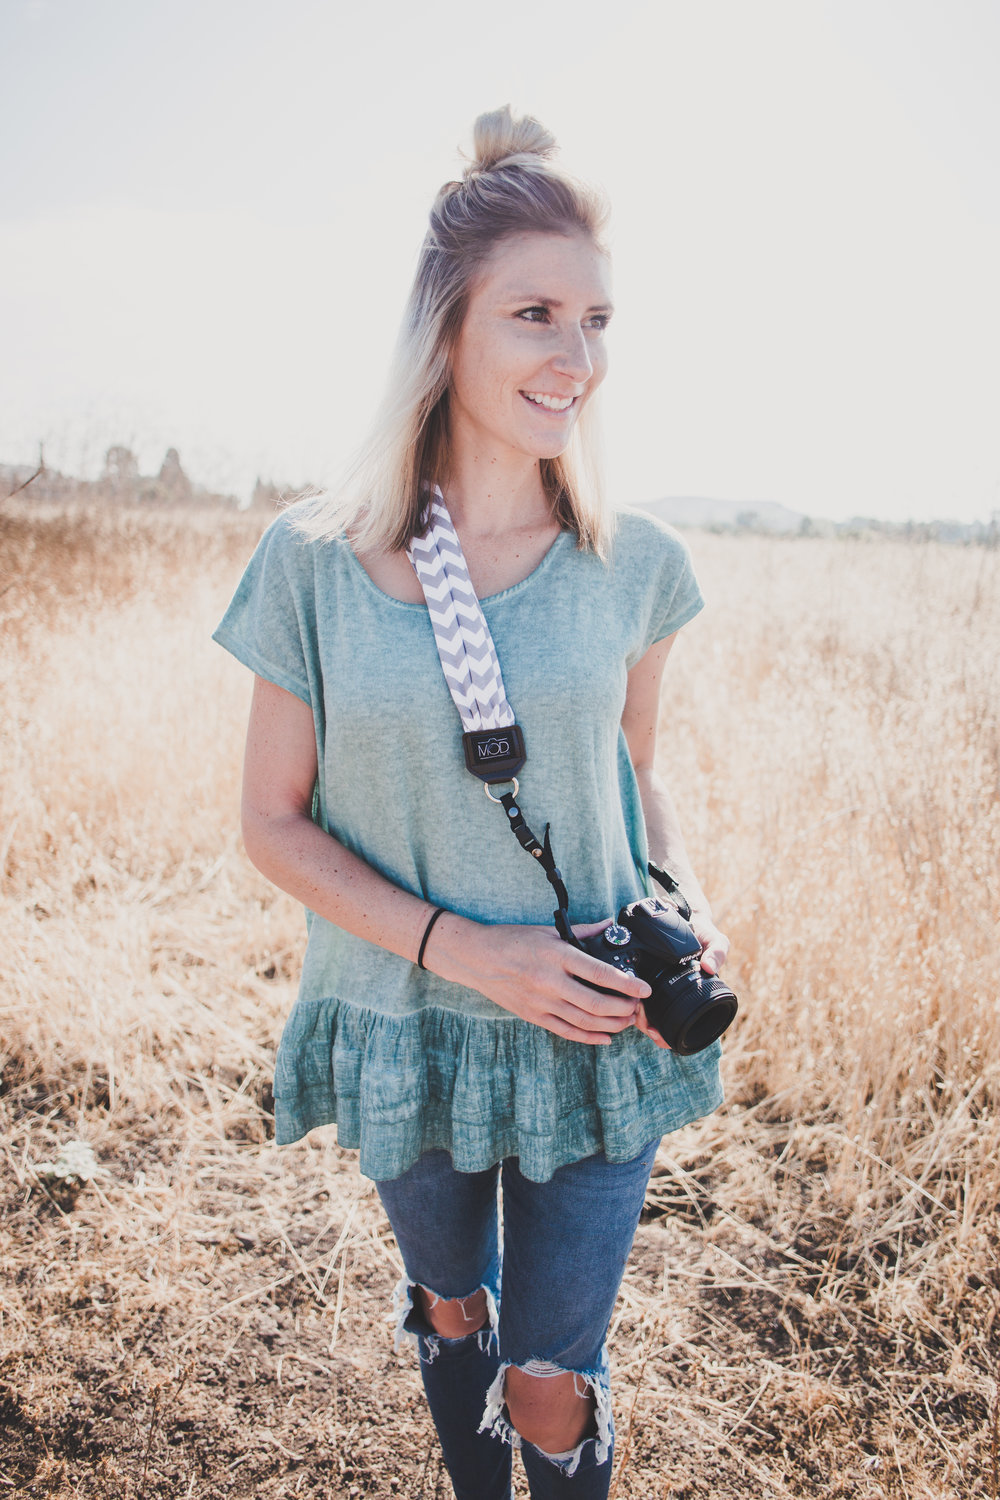 MOD - Cute Scarf Camera Straps - Cute Purse Style Camera Bags